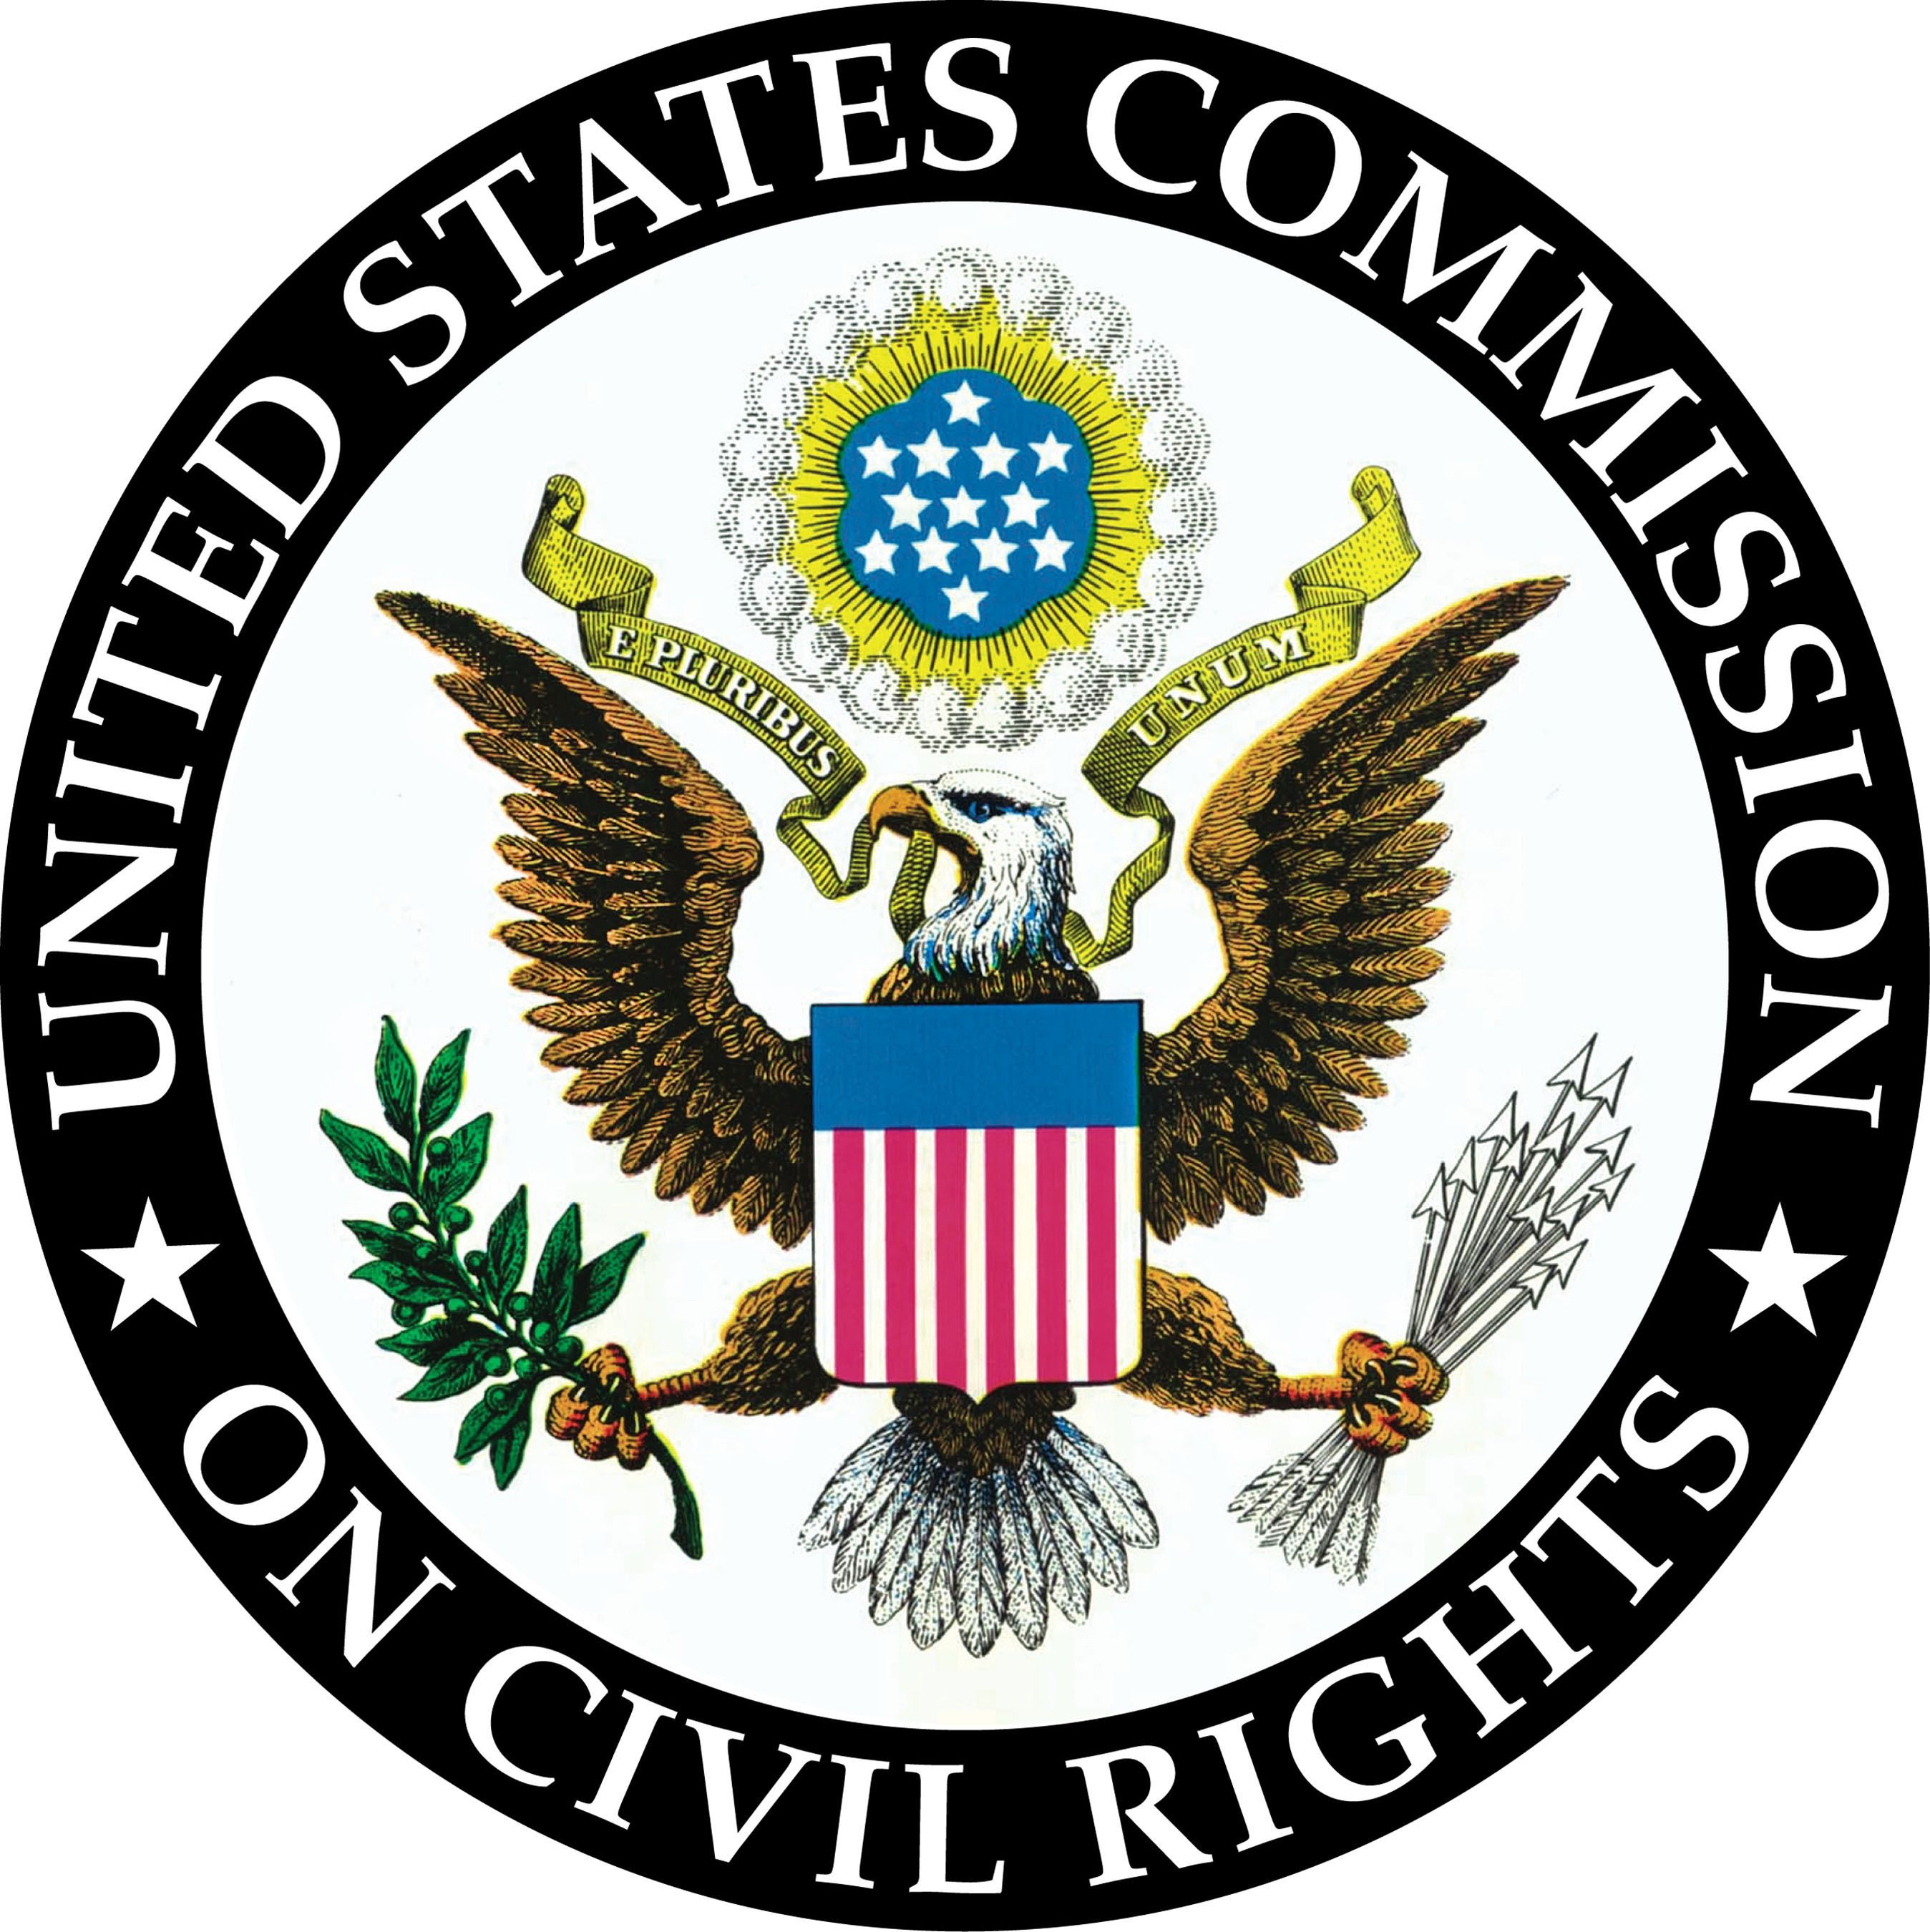 Us commission on civil rights releases report working for explore time to live civil rights and more biocorpaavc Image collections